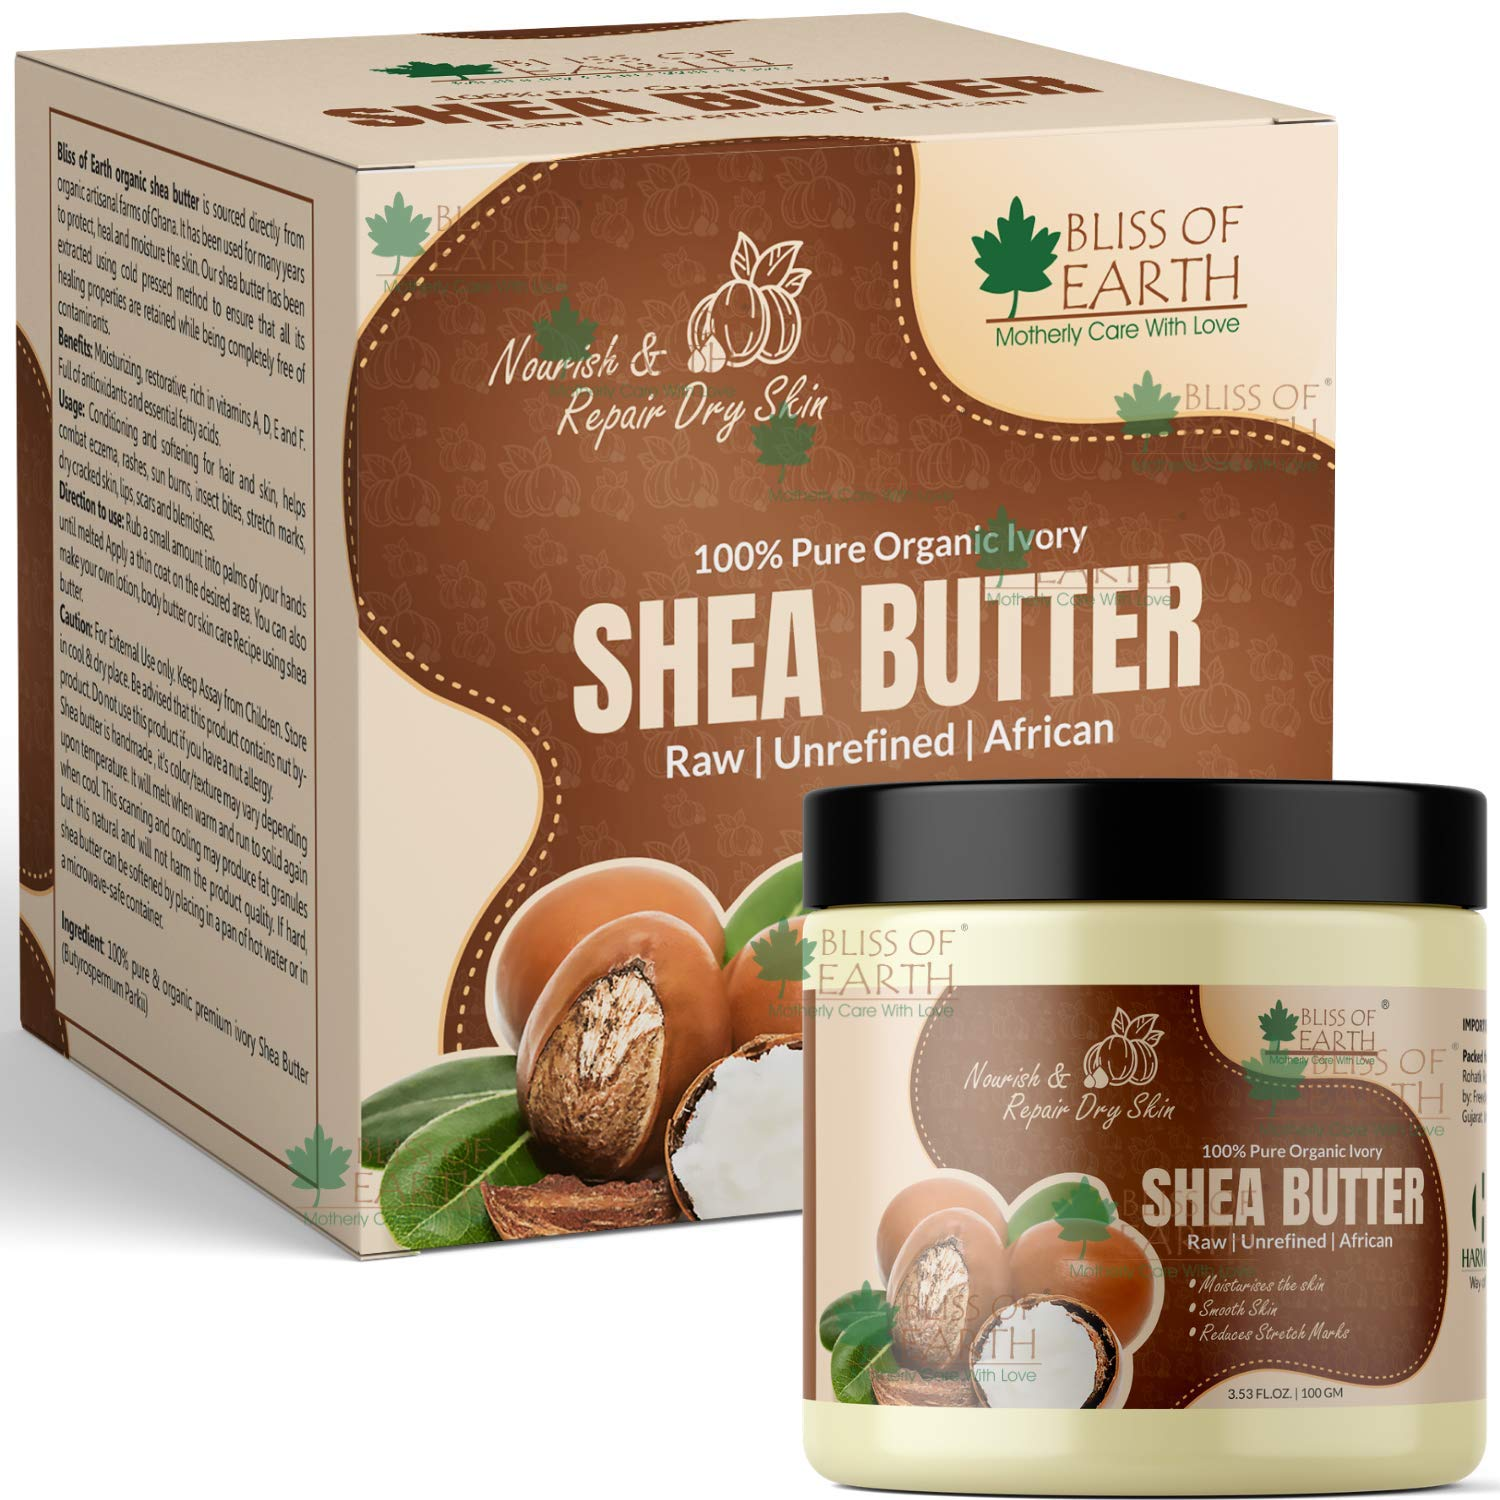 Bliss of Earth® 100% Pure Organic Ivory Shea Butter | Raw | Unrefined | African | 100GM | Great For Face, Skin, Body, Lips, DIY products|